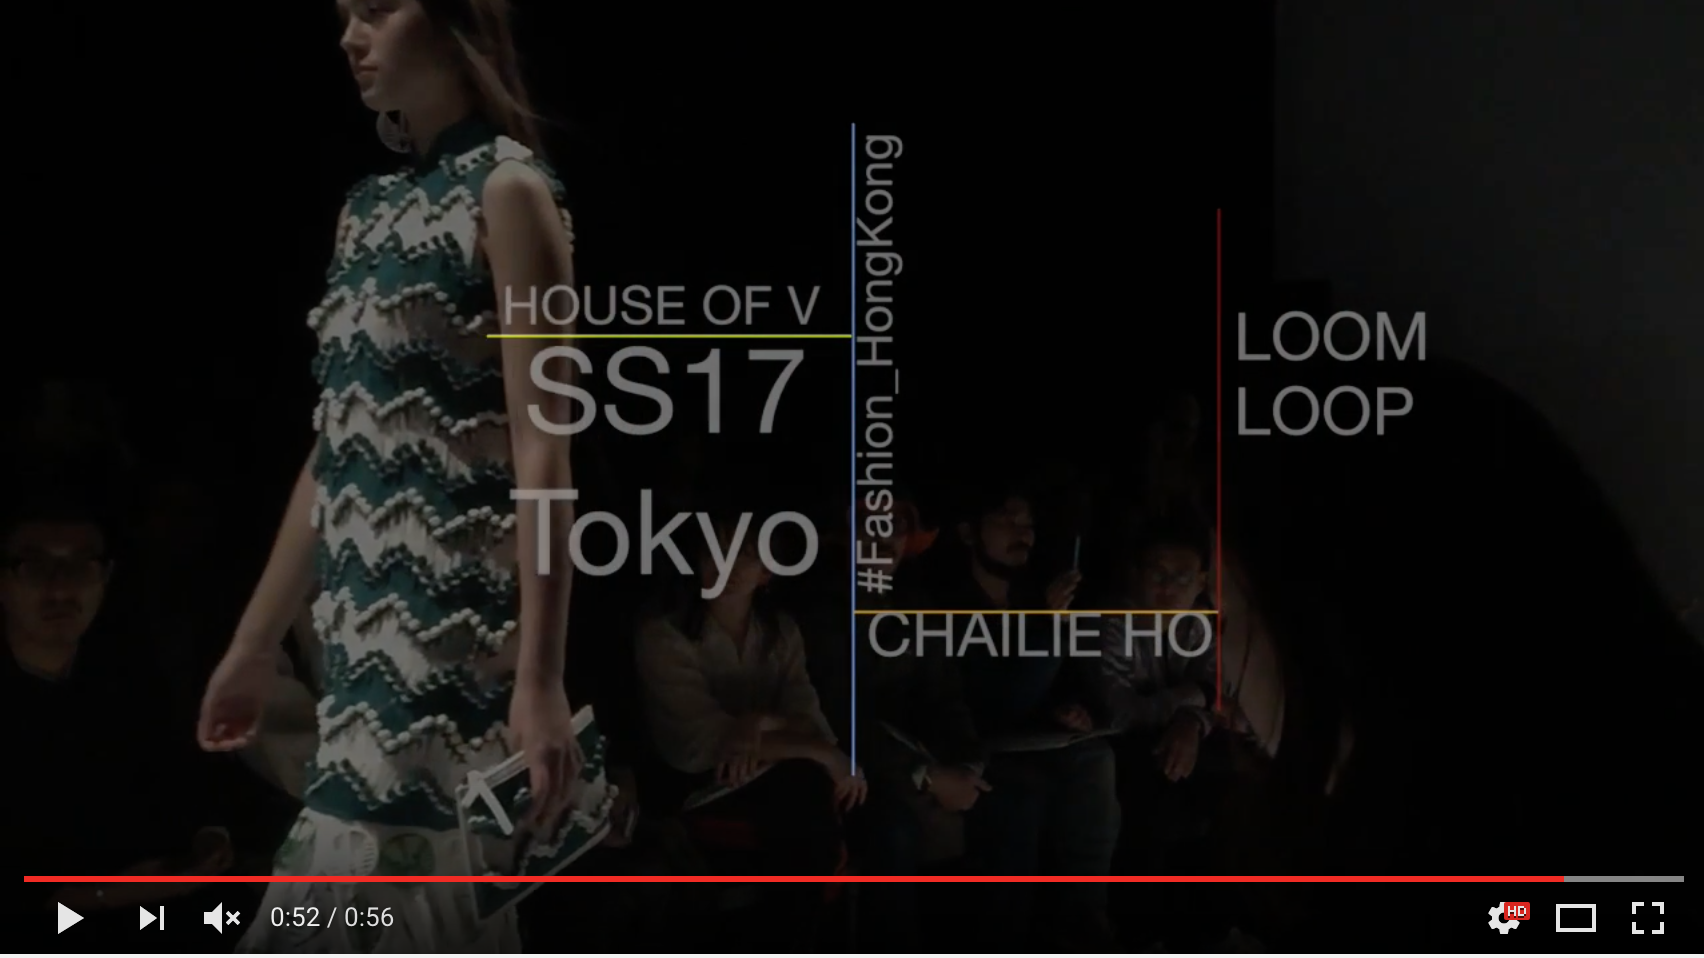 fashion hong kong, image and video by akin abayomi